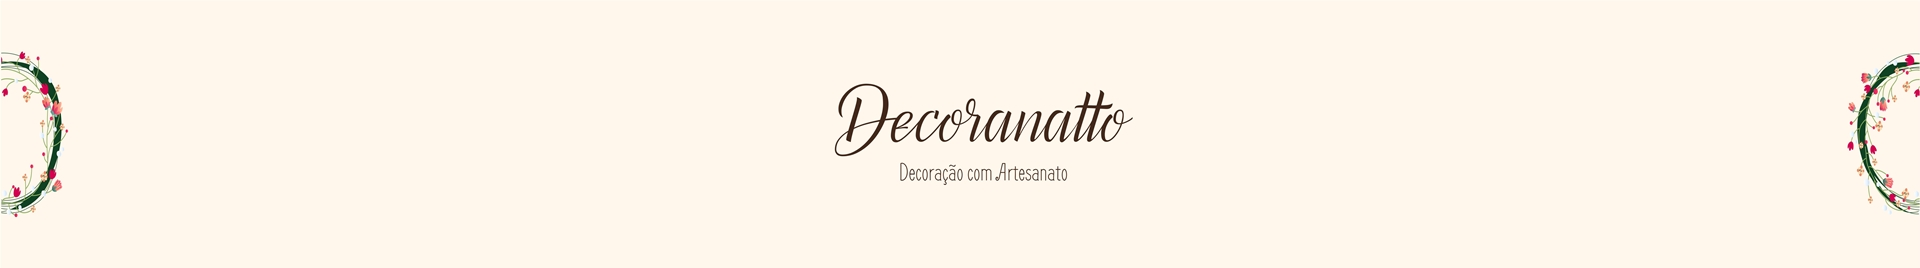 Decoranatto